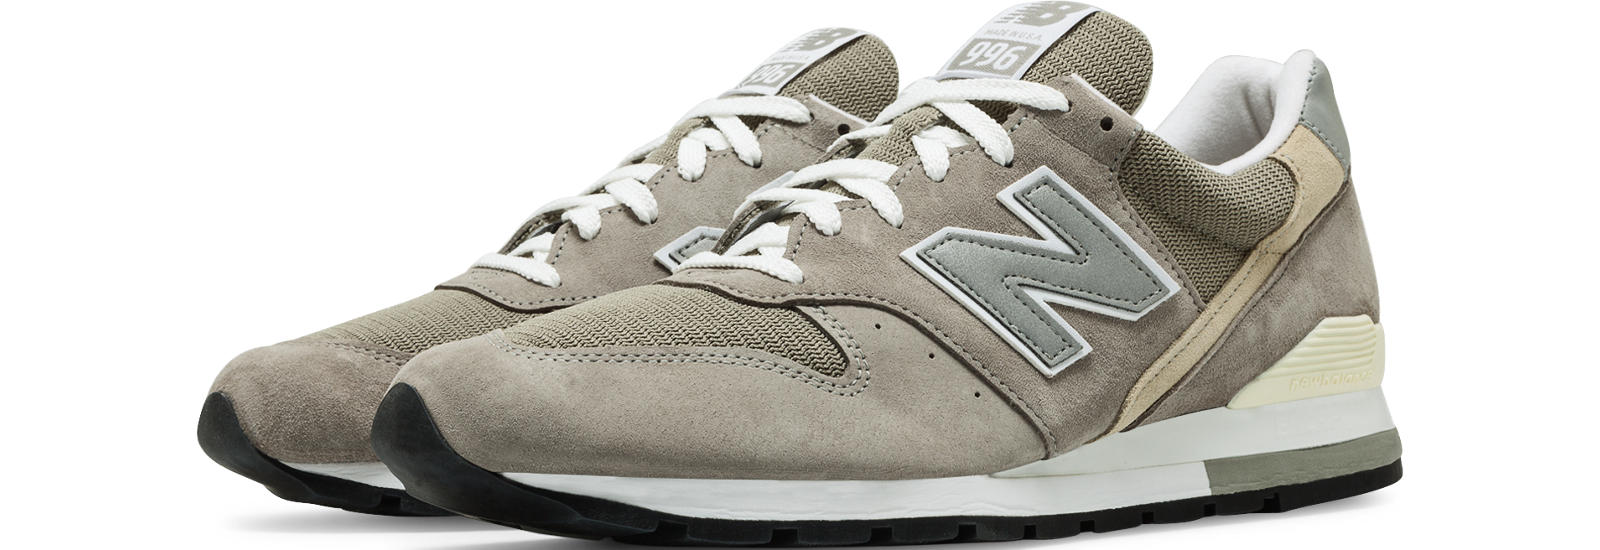 996 Made in the USA Bringback - Men's 996 - Classic, - New Balance